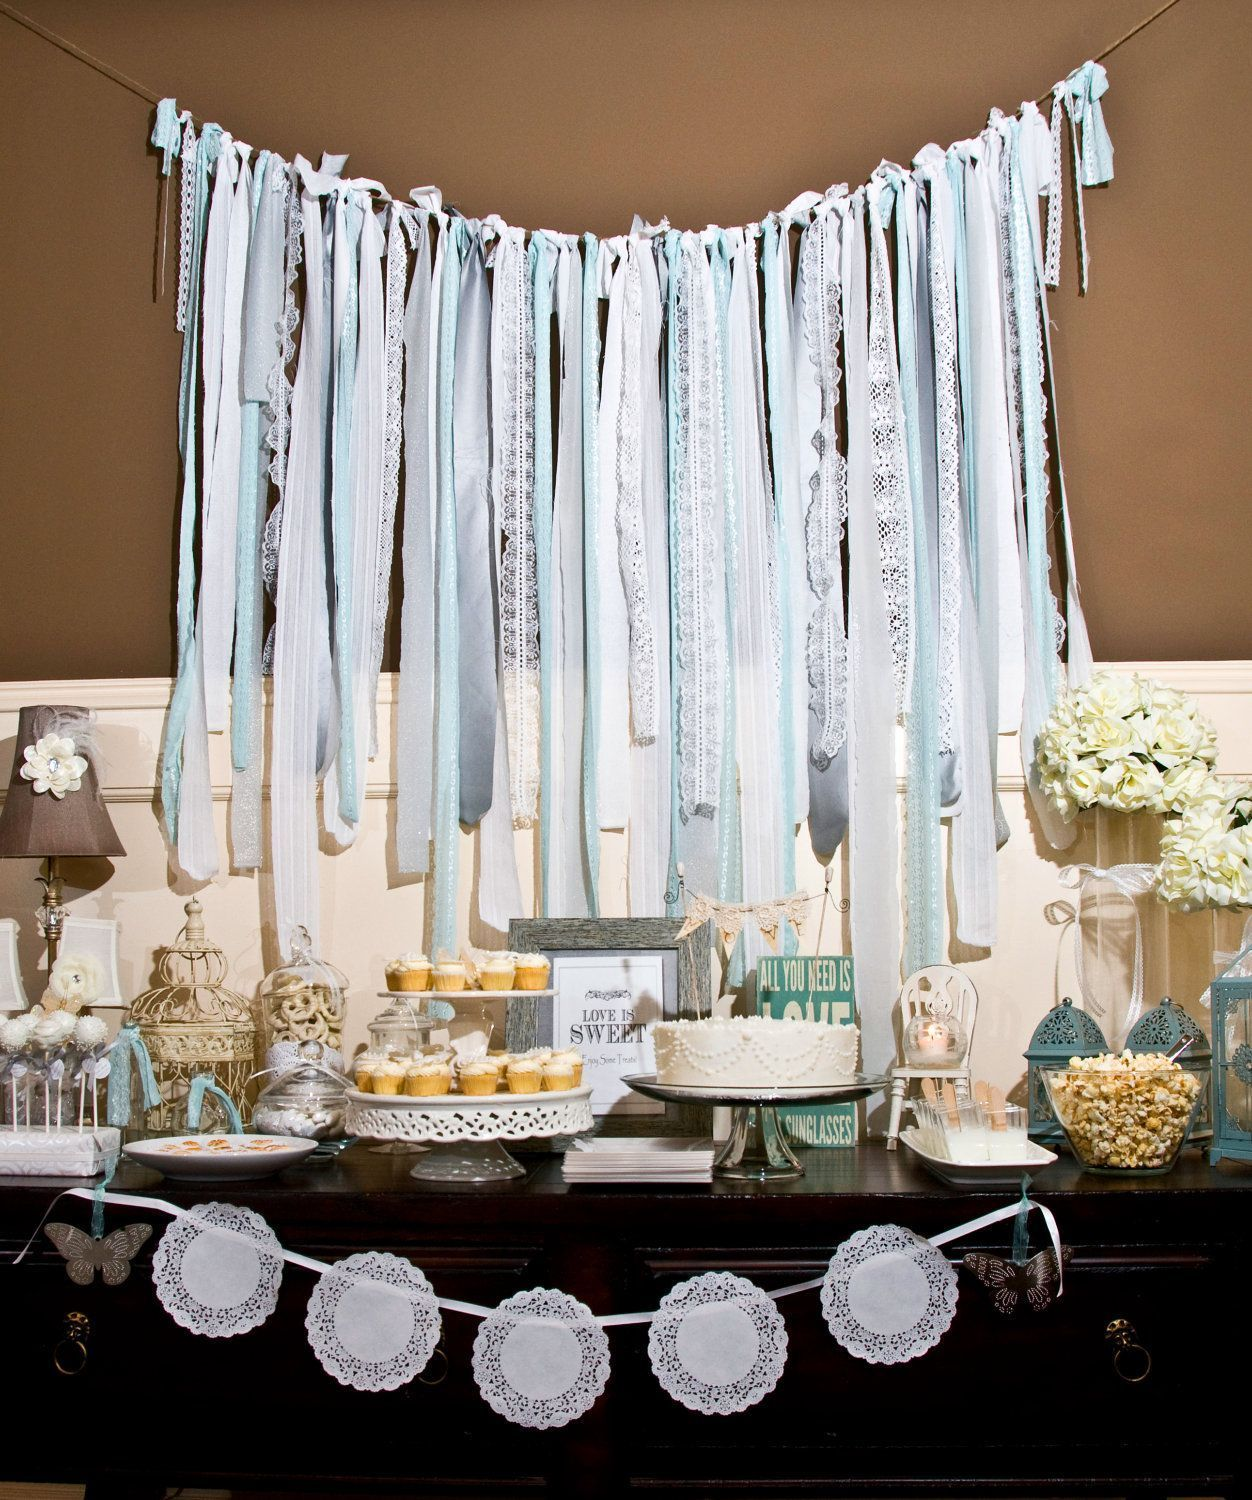 Silver/ Soft Gray/ Light Turquoise/ Seafoam/ White Vintage Fabric Lace Streamer / Backdrop for Wedding/ Baby/ Bridal Shower (HWTM Featured). $110.00, via Etsy. #streamerbackdrop Silver/ Soft Gray/ Light Turquoise/ Seafoam/ White Vintage Fabric Lace Streamer / Backdrop for Wedding/ Baby/ Bridal Shower (HWTM Featured). $110.00, via Etsy. #streamerbackdrop Silver/ Soft Gray/ Light Turquoise/ Seafoam/ White Vintage Fabric Lace Streamer / Backdrop for Wedding/ Baby/ Bridal Shower (HWTM Featured). $11 #streamerbackdrop